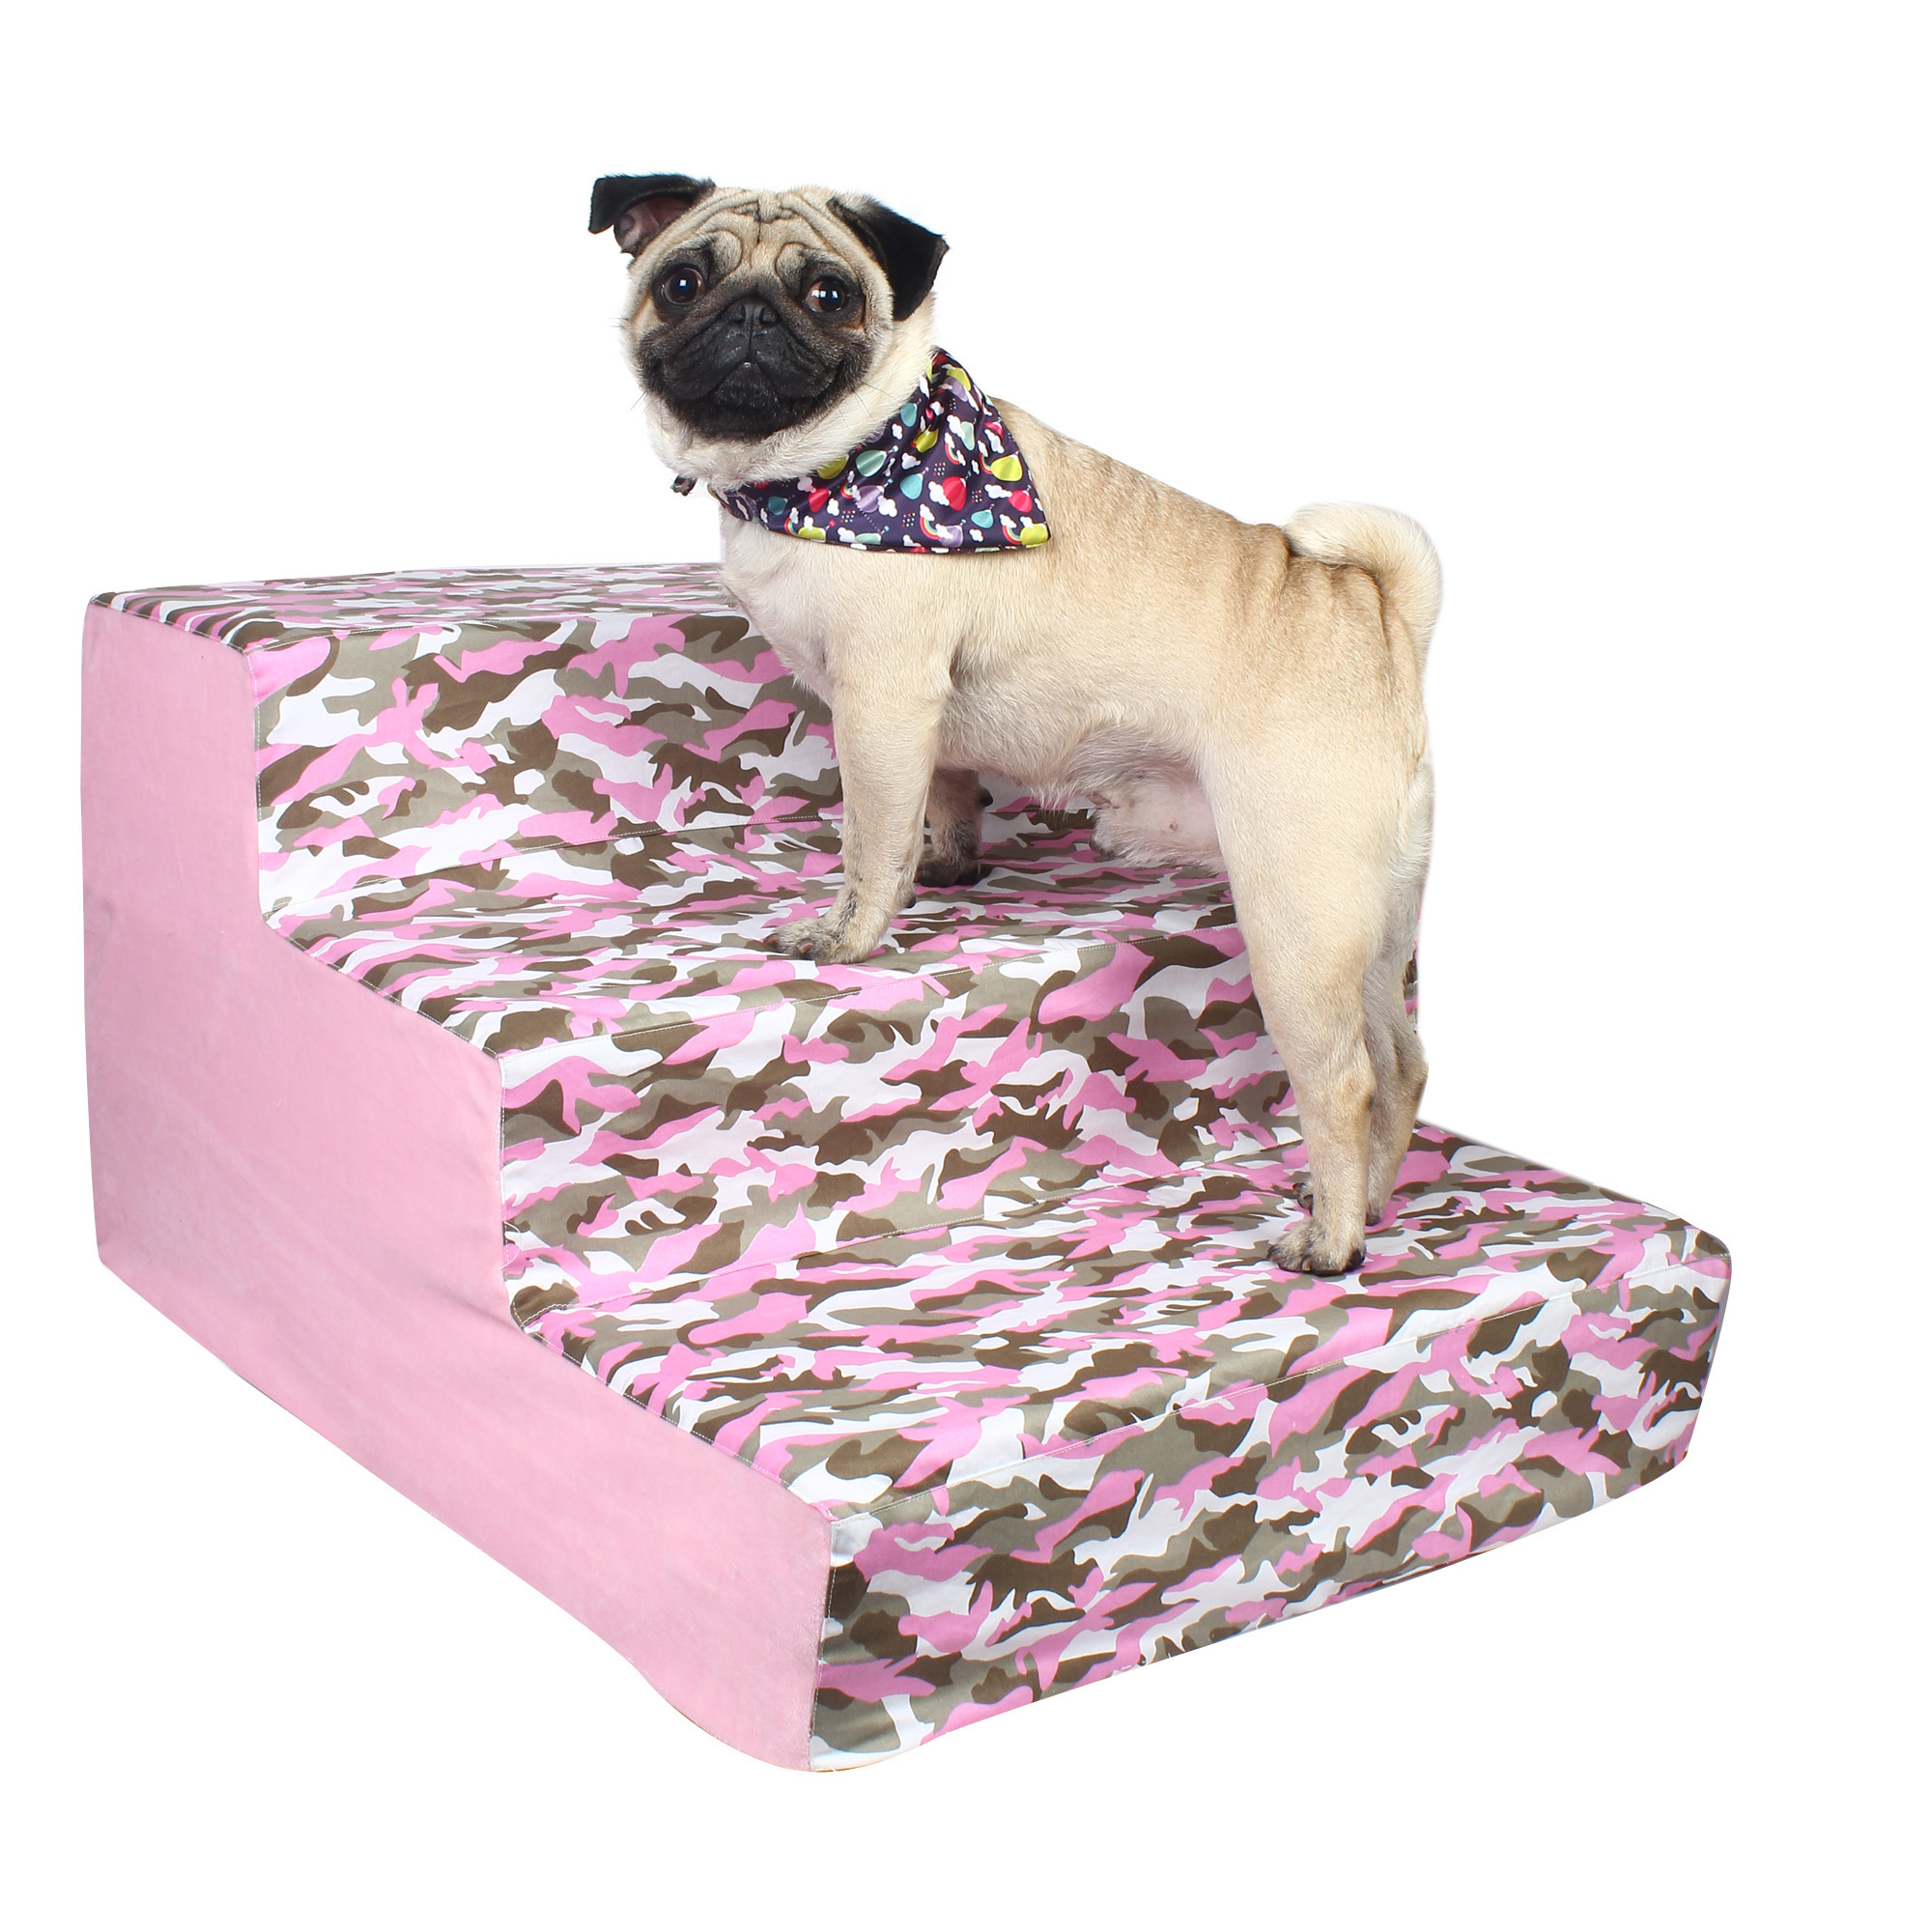 Dog stairs 3 Steps Ramp Ladder pink army print